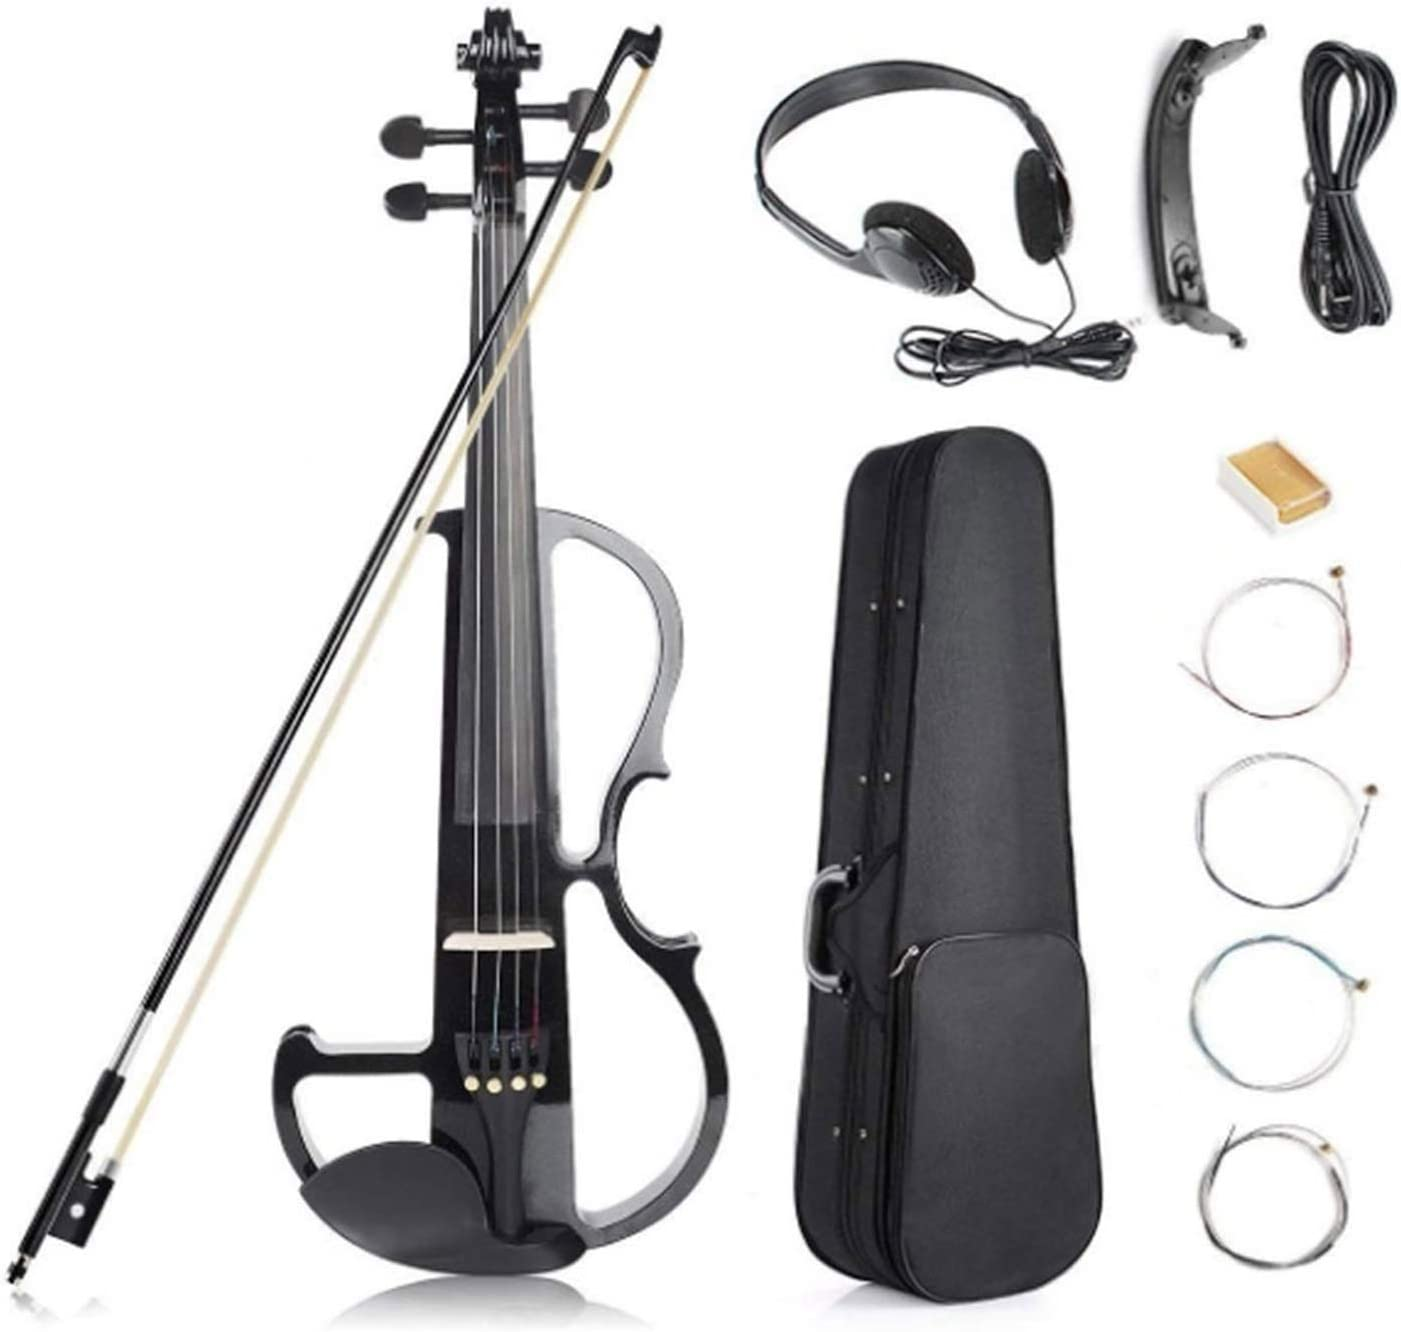 Limited price sale LIRONGXILY Acoustic Violin Max 52% OFF Fiddle Wood Handmade Solid 4